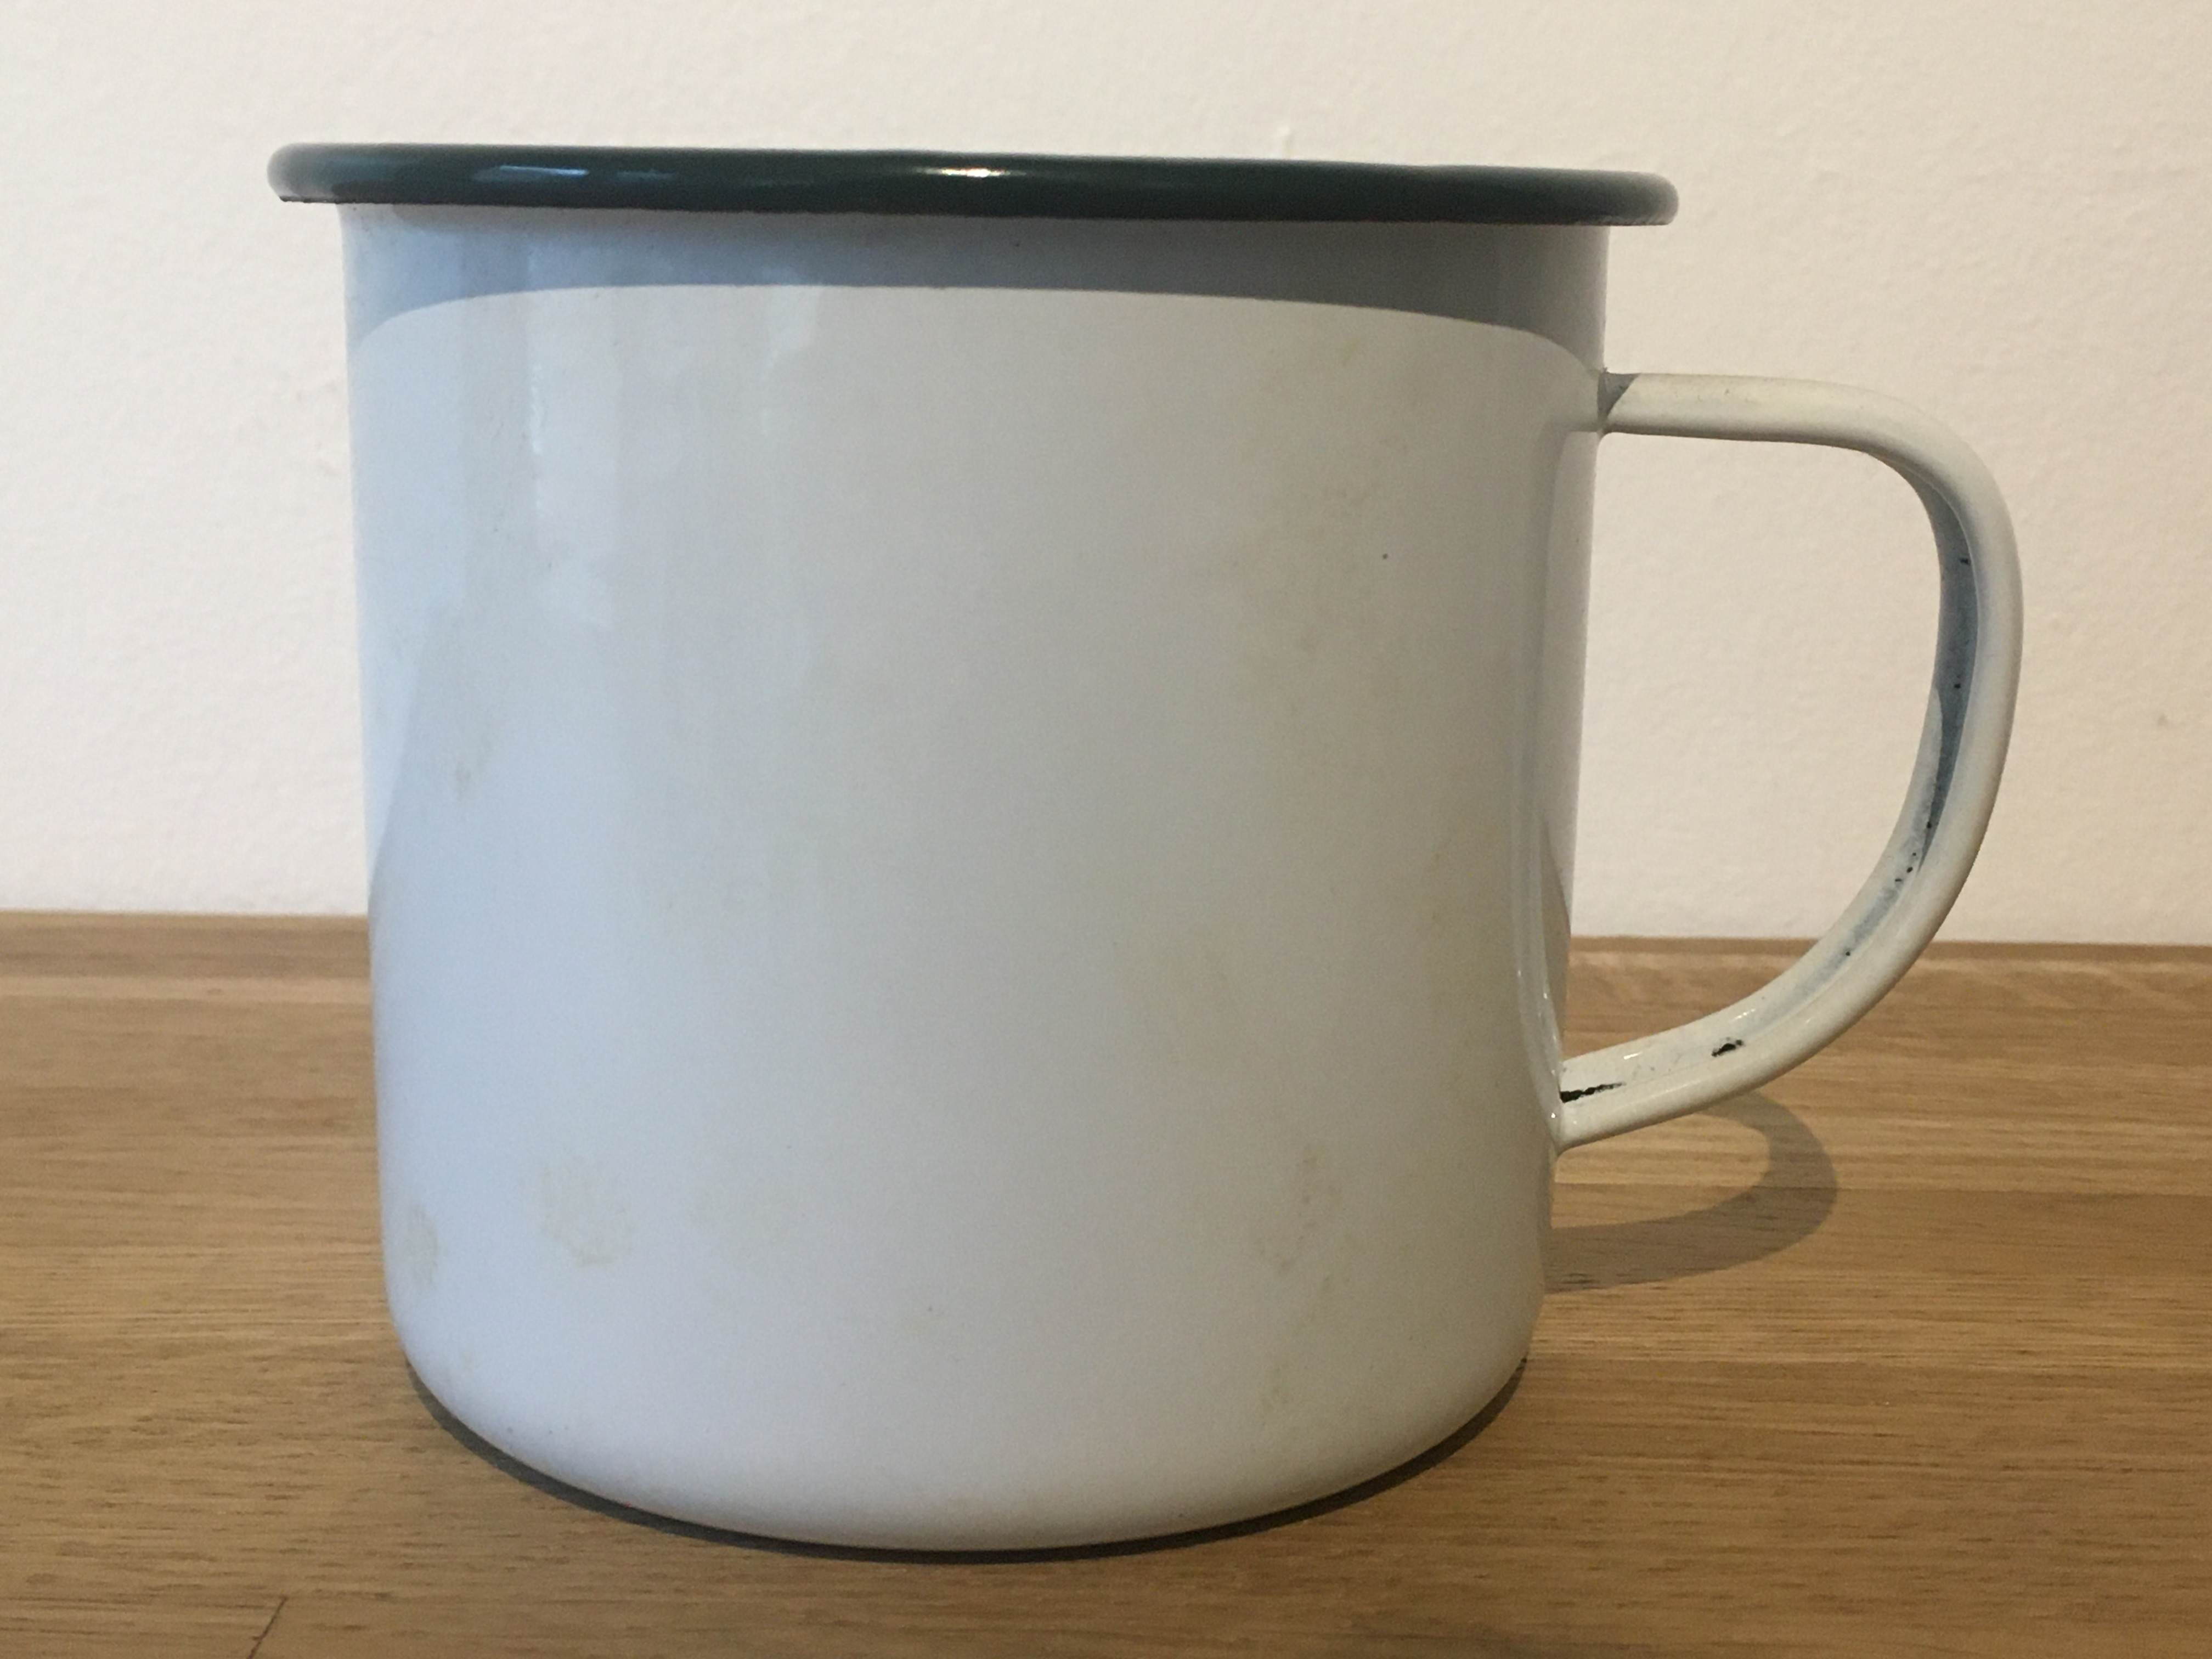 Official Goodwood Revival Meeting Mug - Image 4 of 5